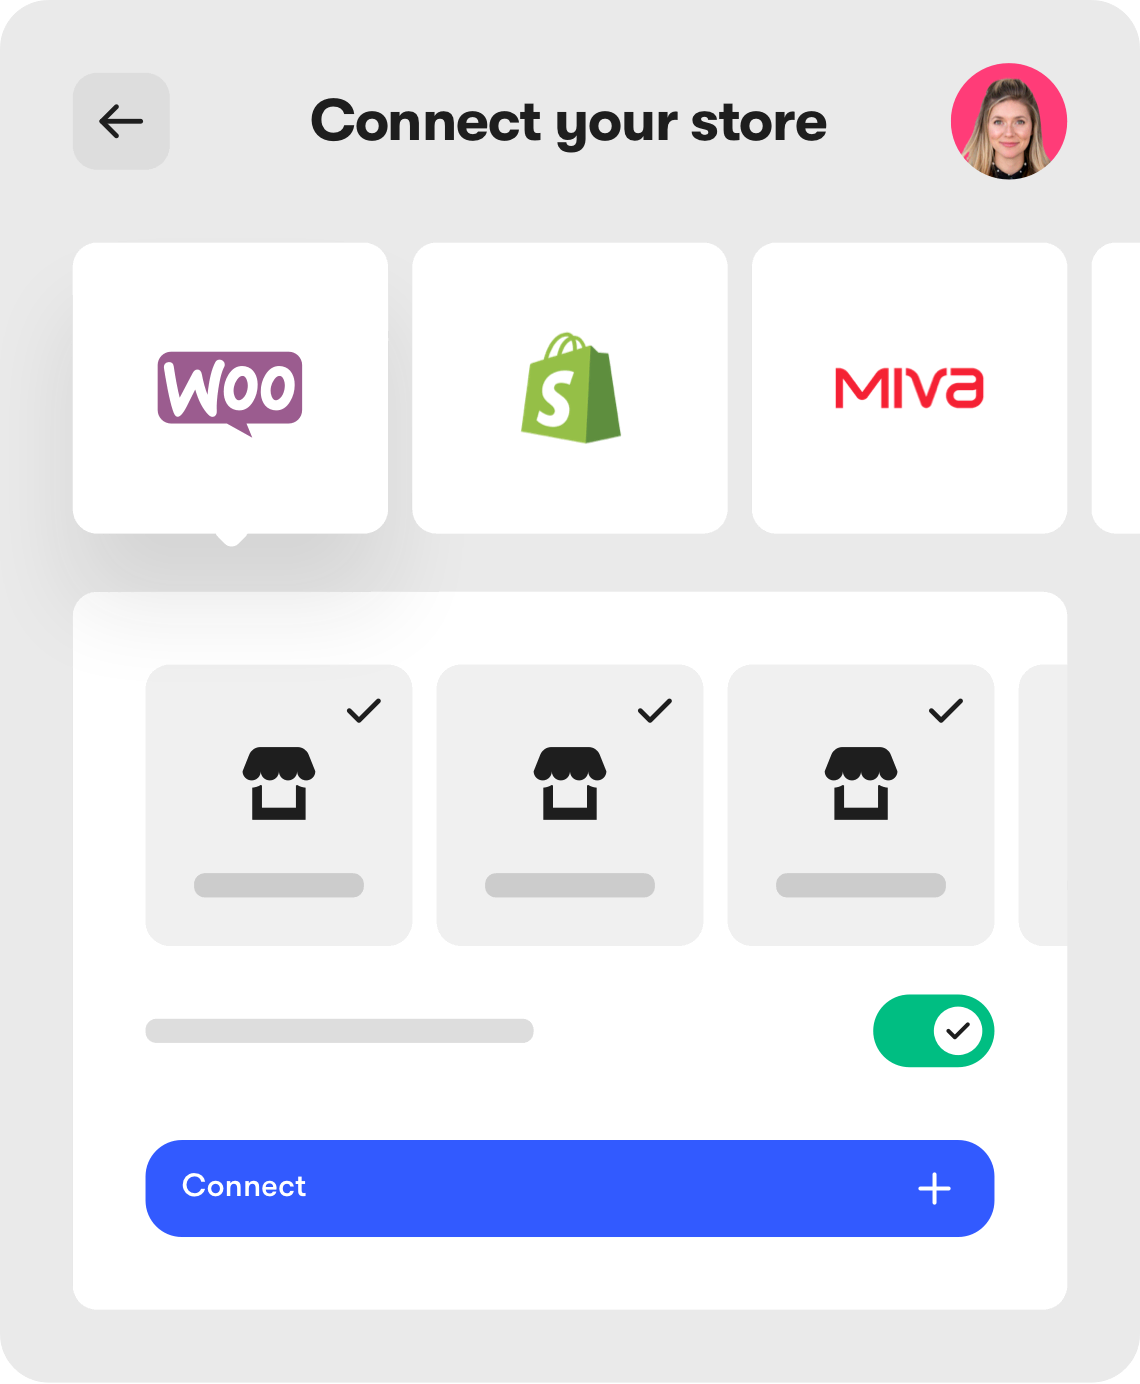 Connect your store dashboard